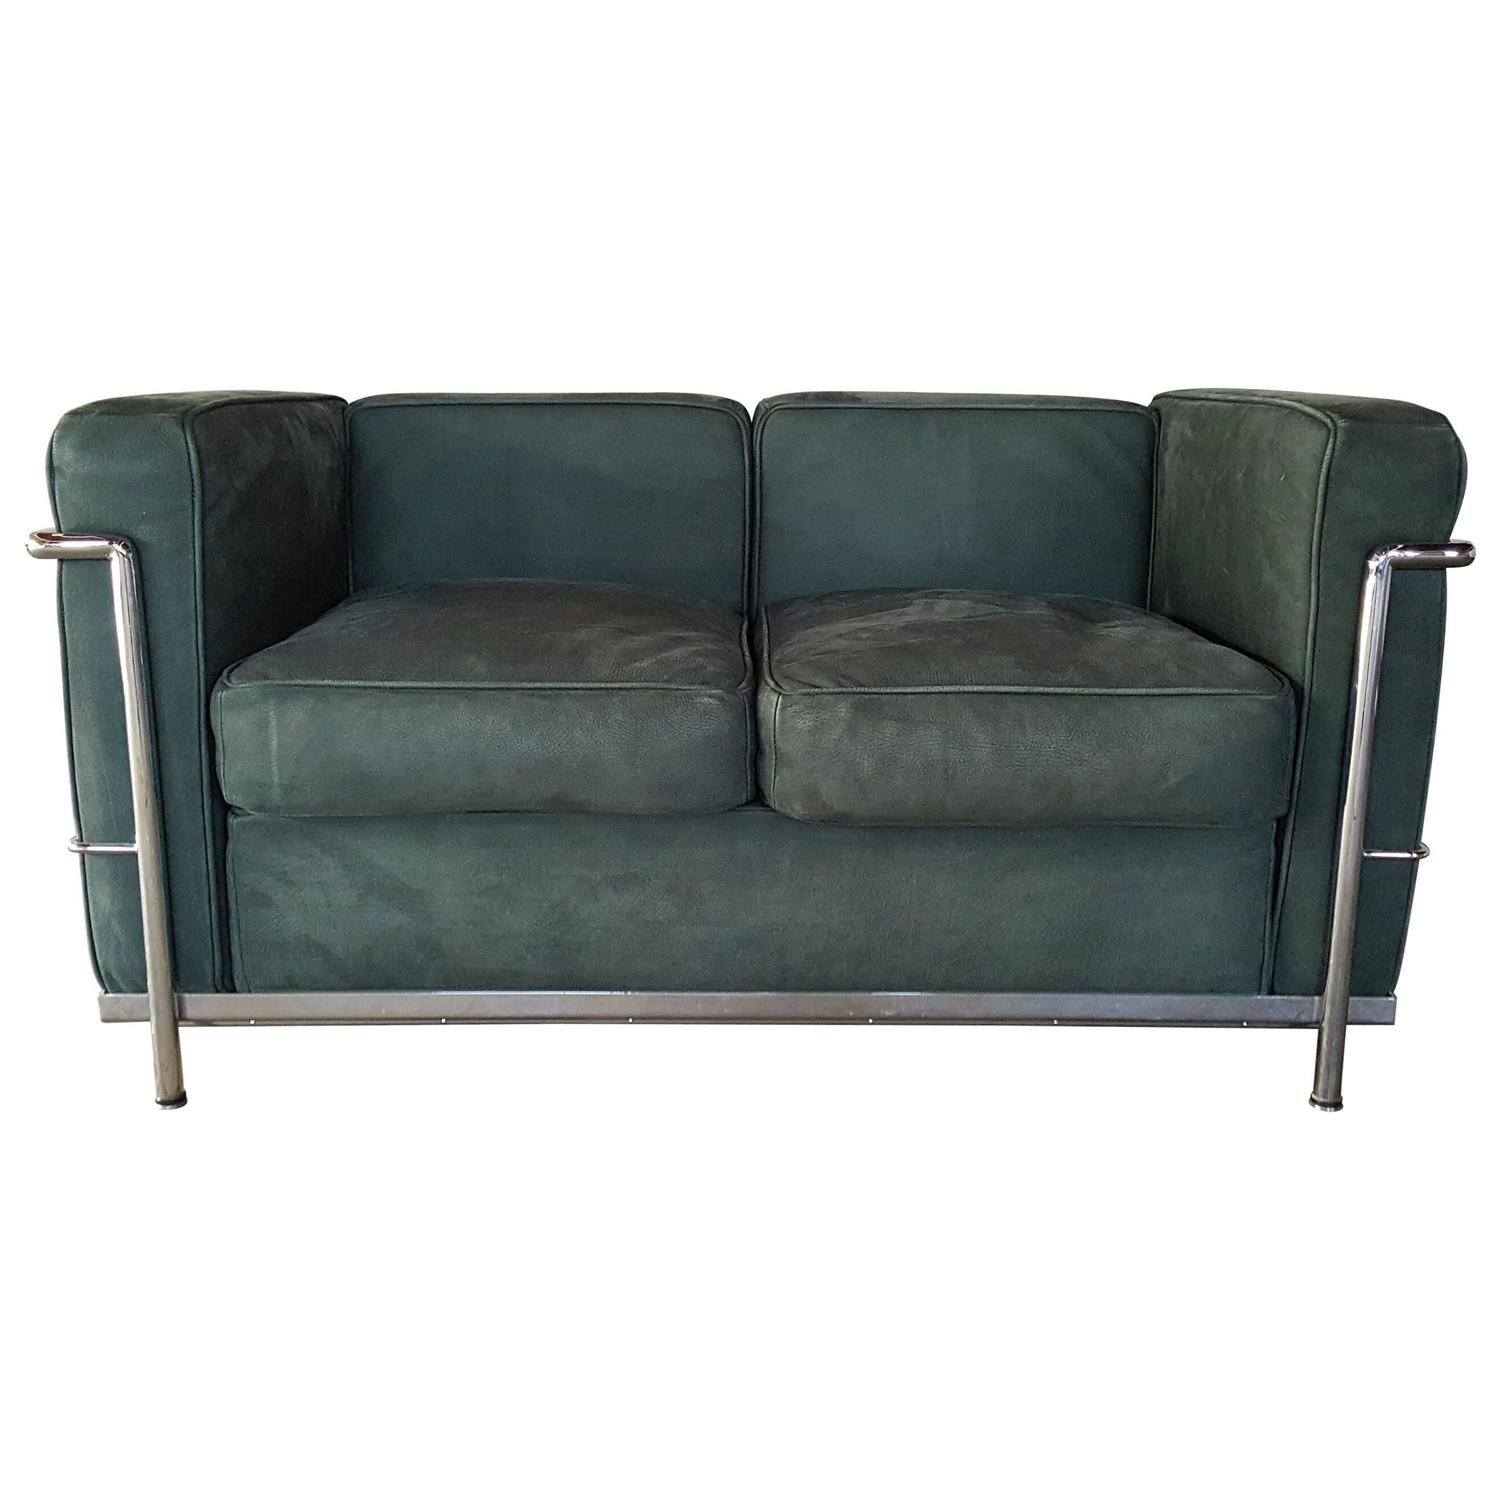 le corbusier two seat sofa loveseat green suede and. Black Bedroom Furniture Sets. Home Design Ideas